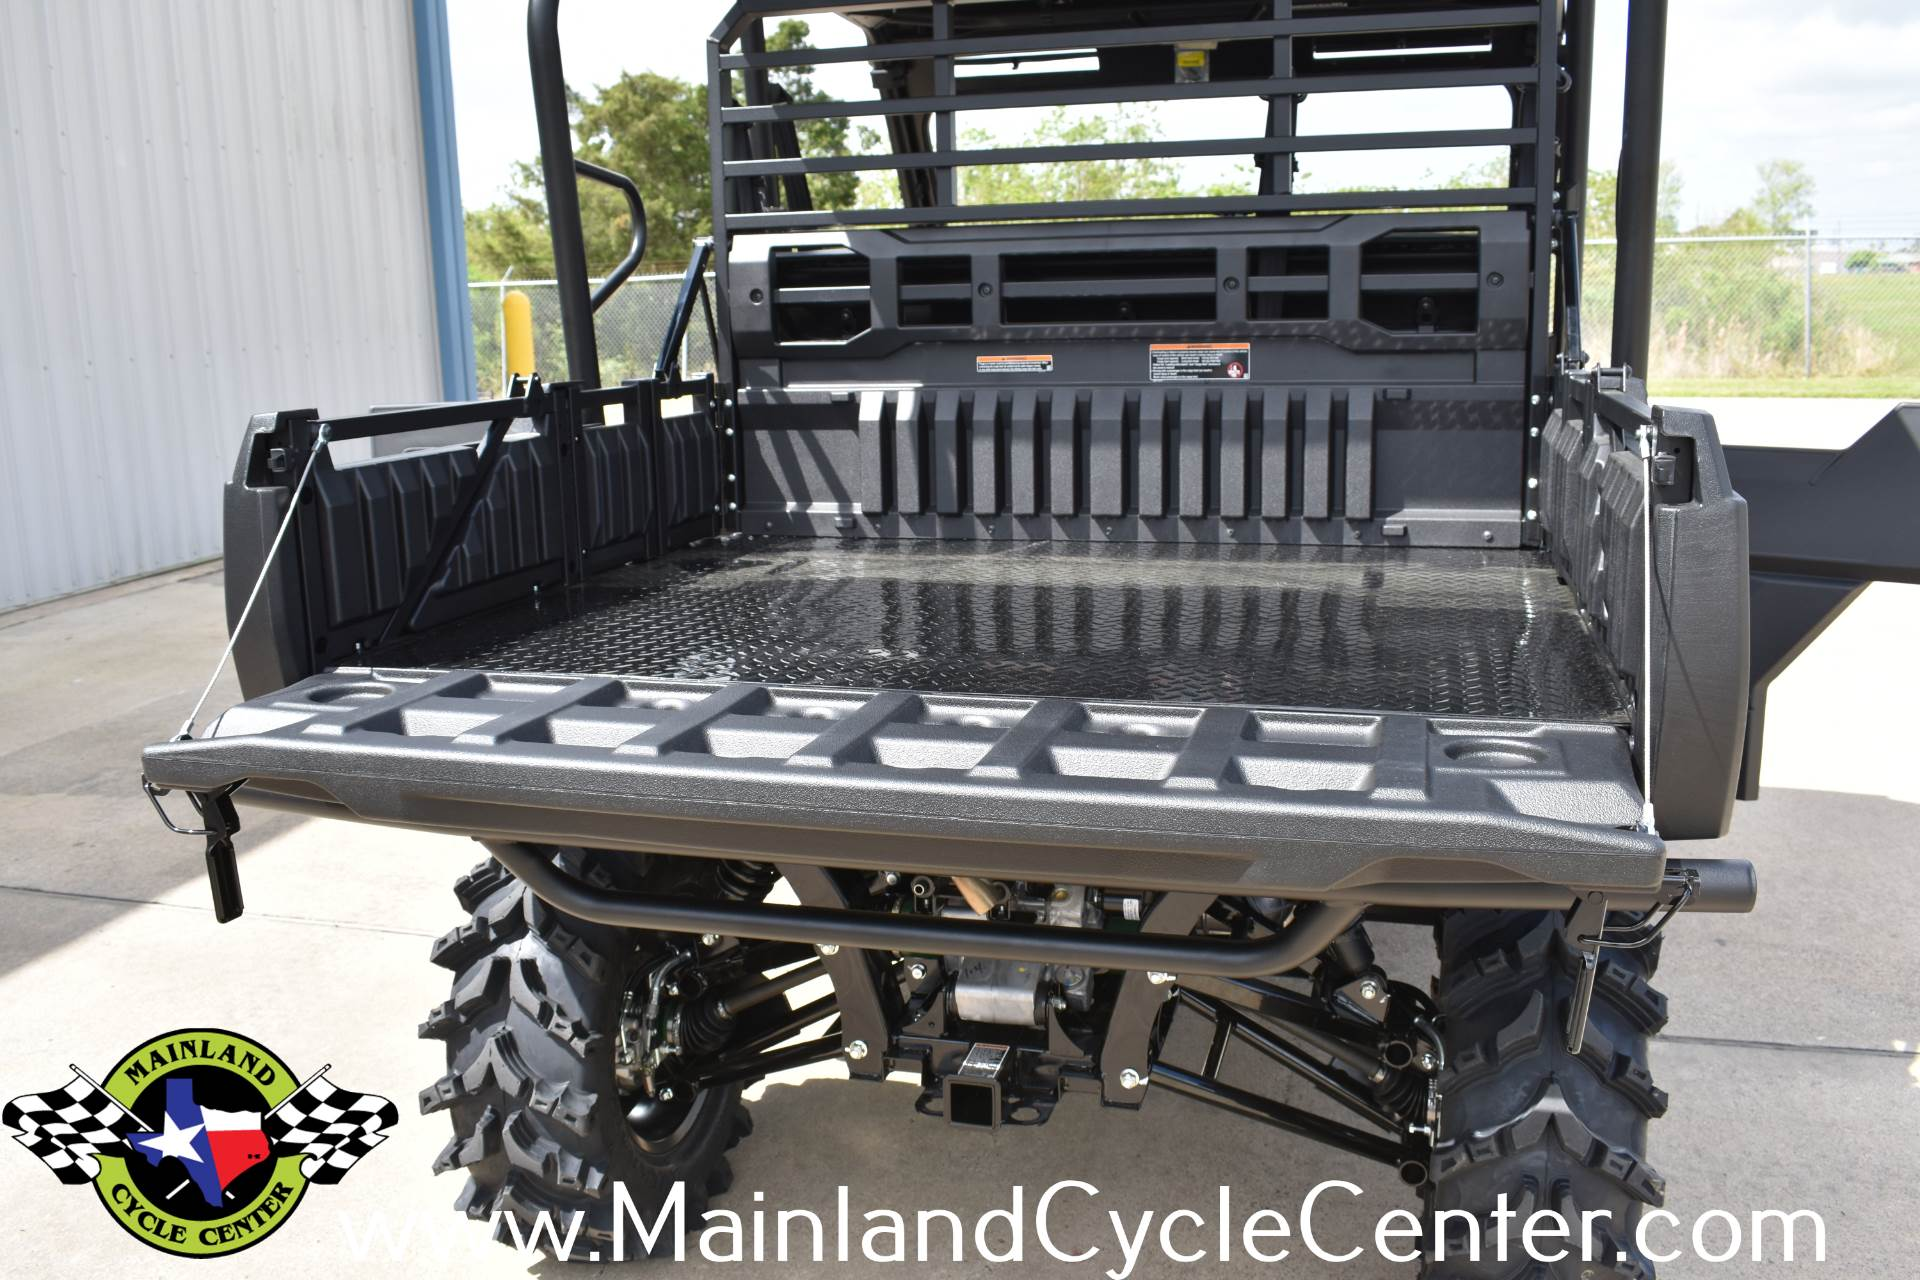 2018 Kawasaki Mule PRO-FXT EPS LE in La Marque, Texas - Photo 22